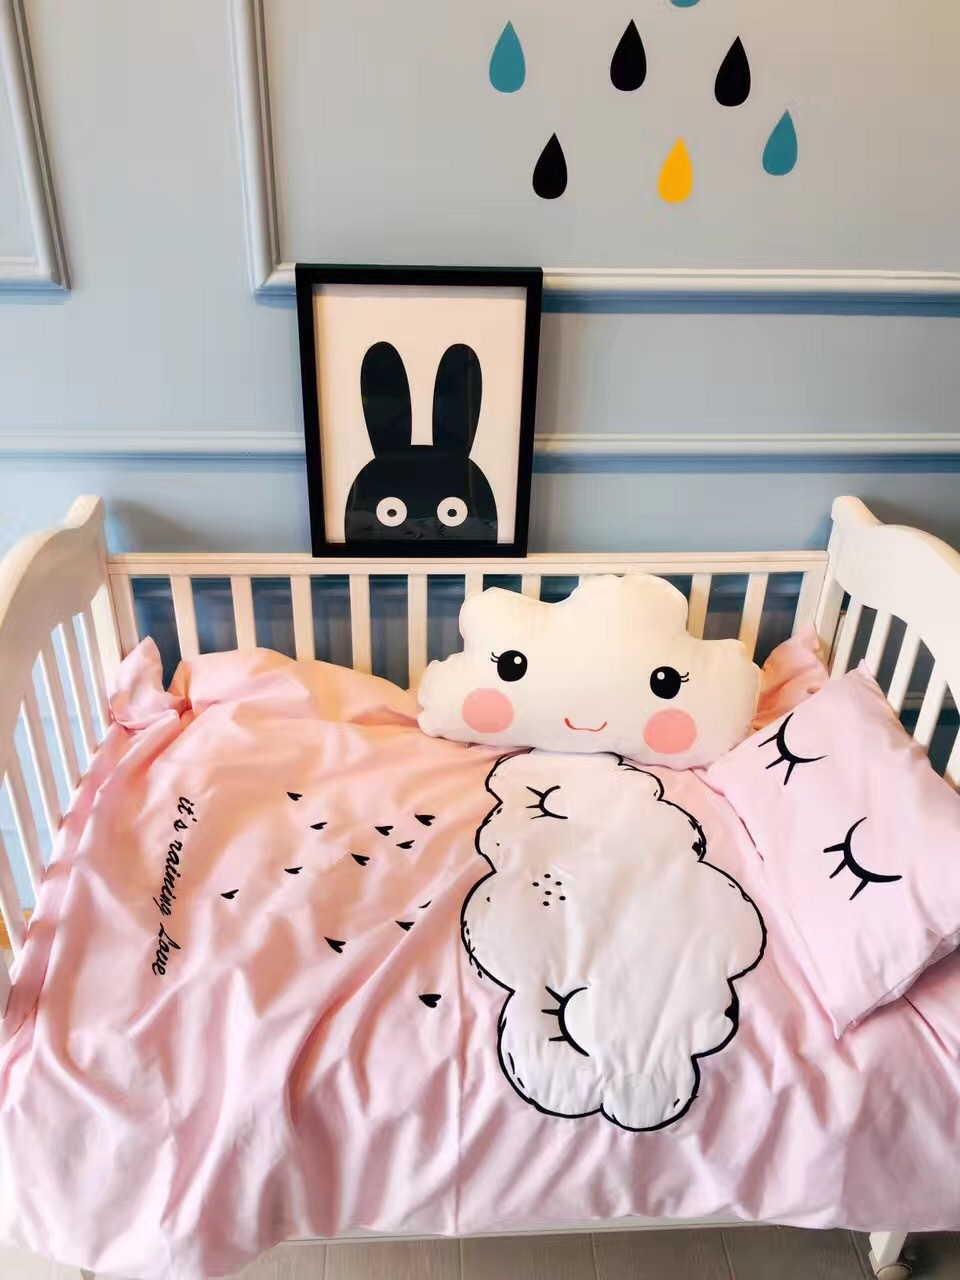 3Pcs Cotton Bed Bed Linen Kit Baby Infant Cartoon Bedding Set Includes Pillow Case Bed Sheet Duvet Cover No Load